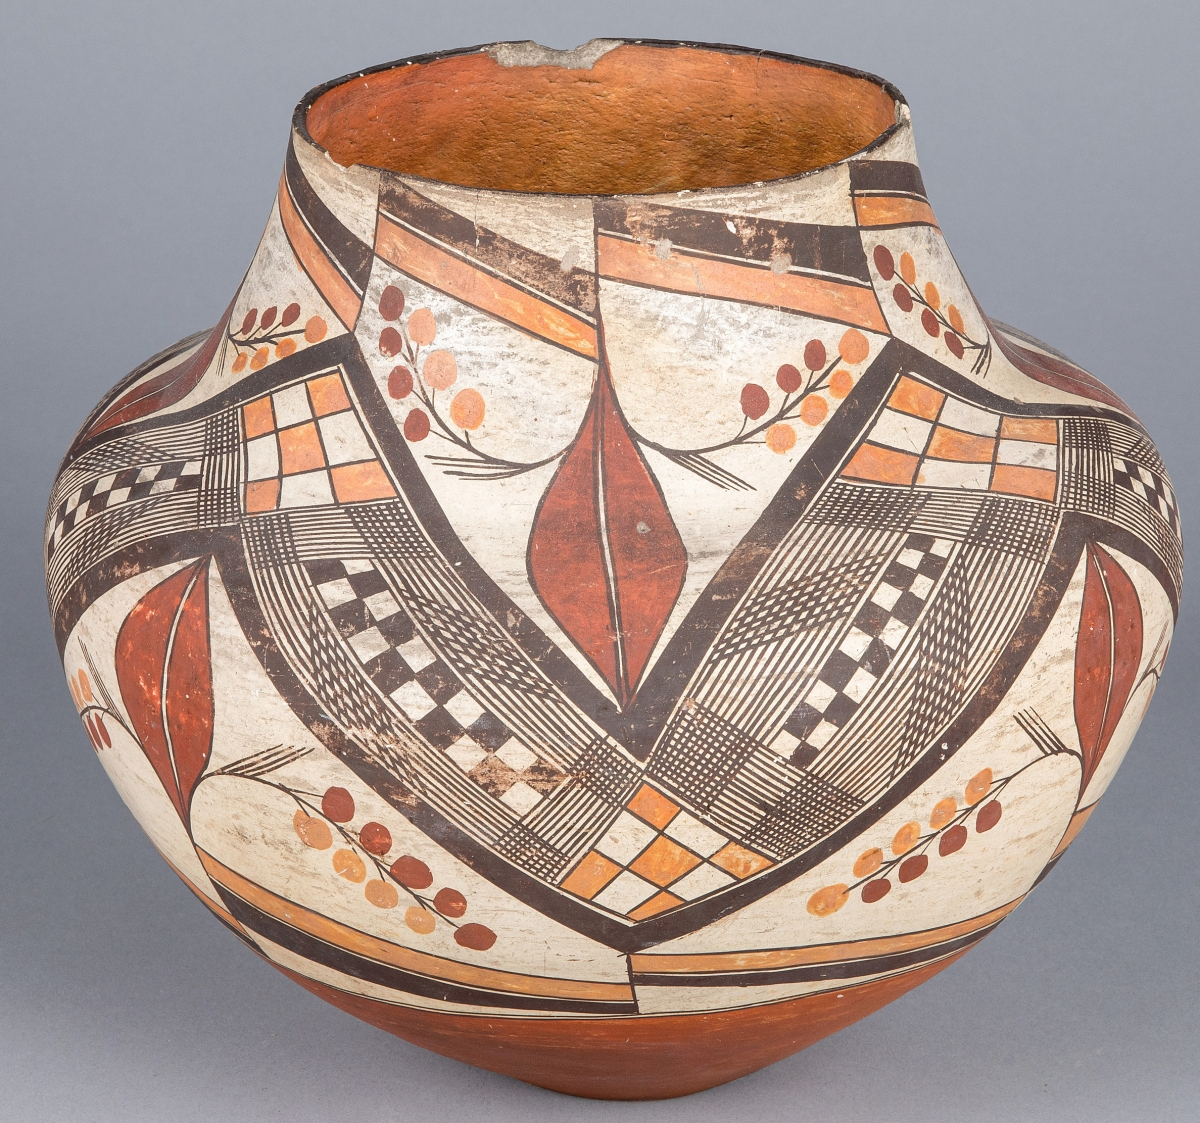 The firm said this olla was possibly by a Zia potter. It measured 11 inches high and sold for $6,426, the third highest lot in the sale.